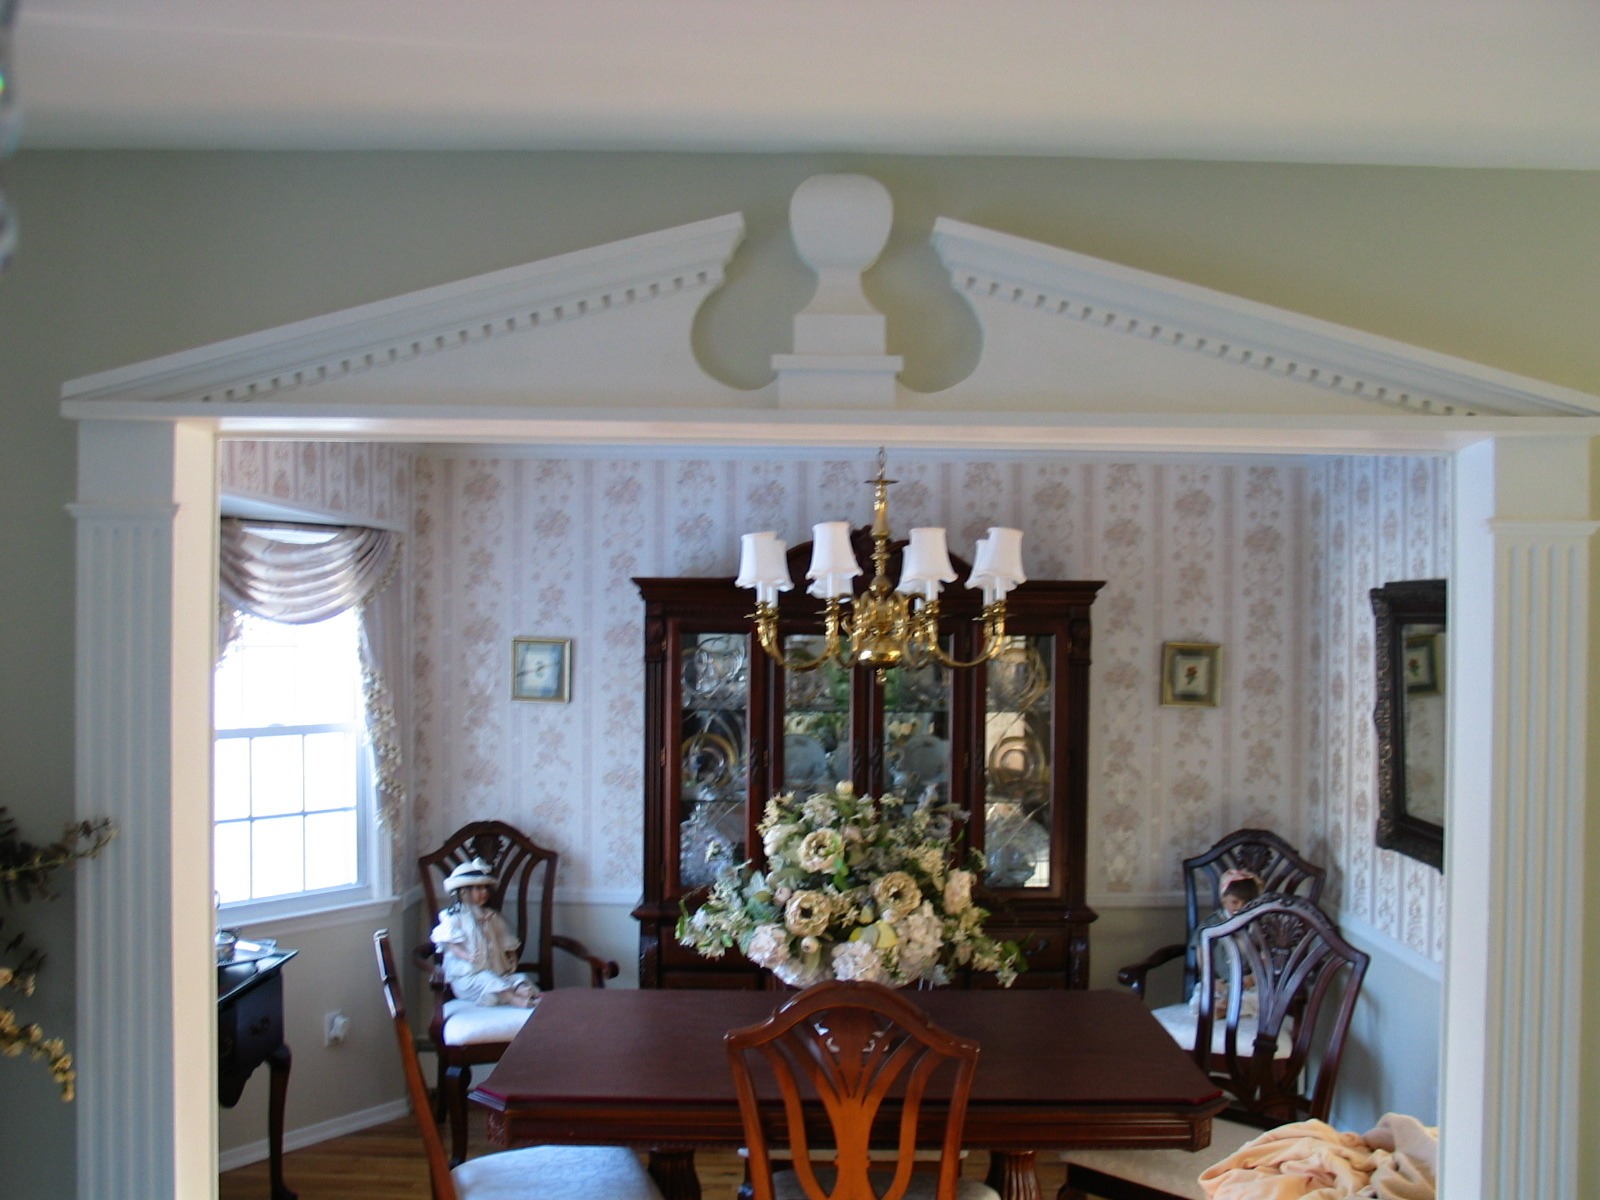 Install crown moulding, chair rail moulding, wallpaper, paint, and chandelier